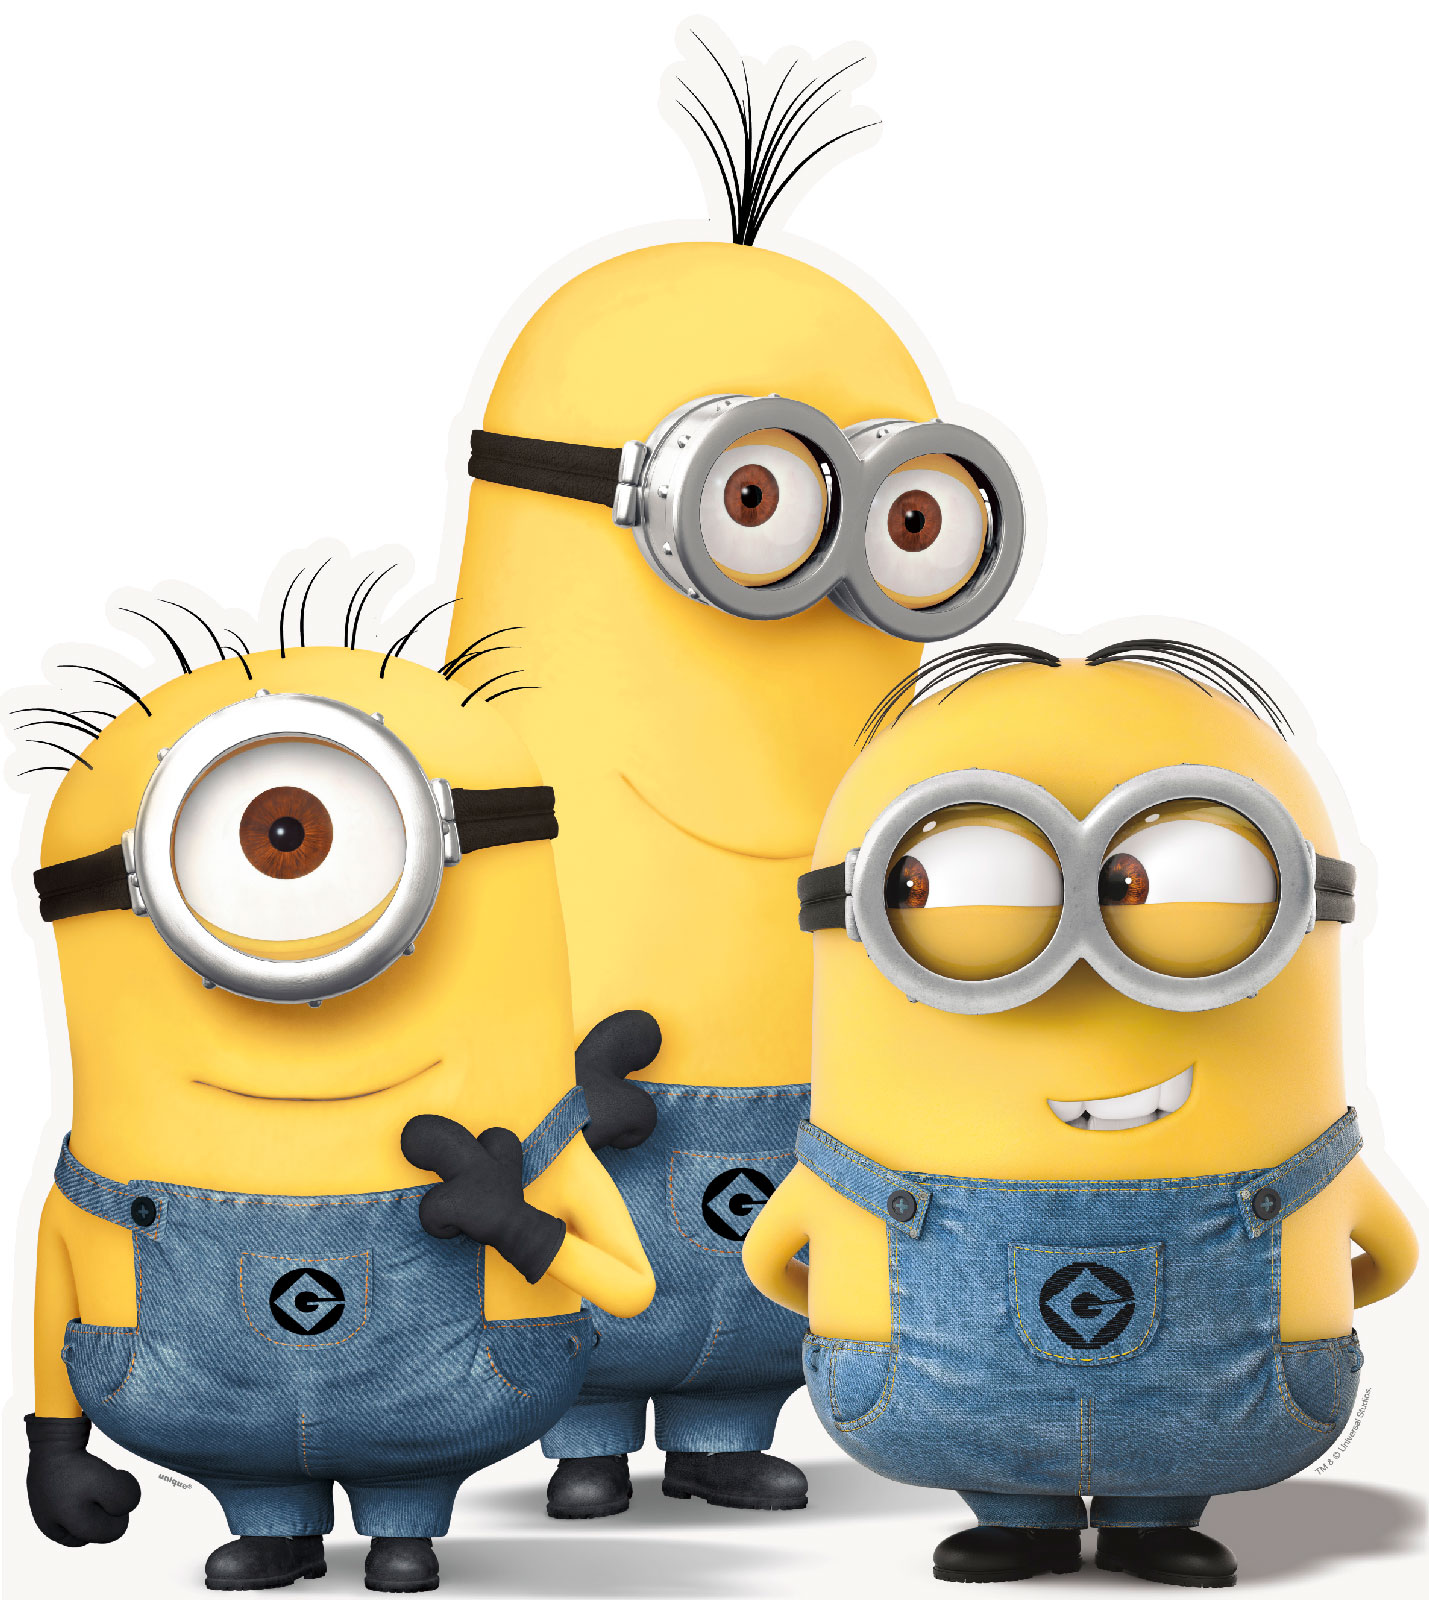 Marvel Iphone Wallpaper Minions Despicable Me Group Standup 3 Tall